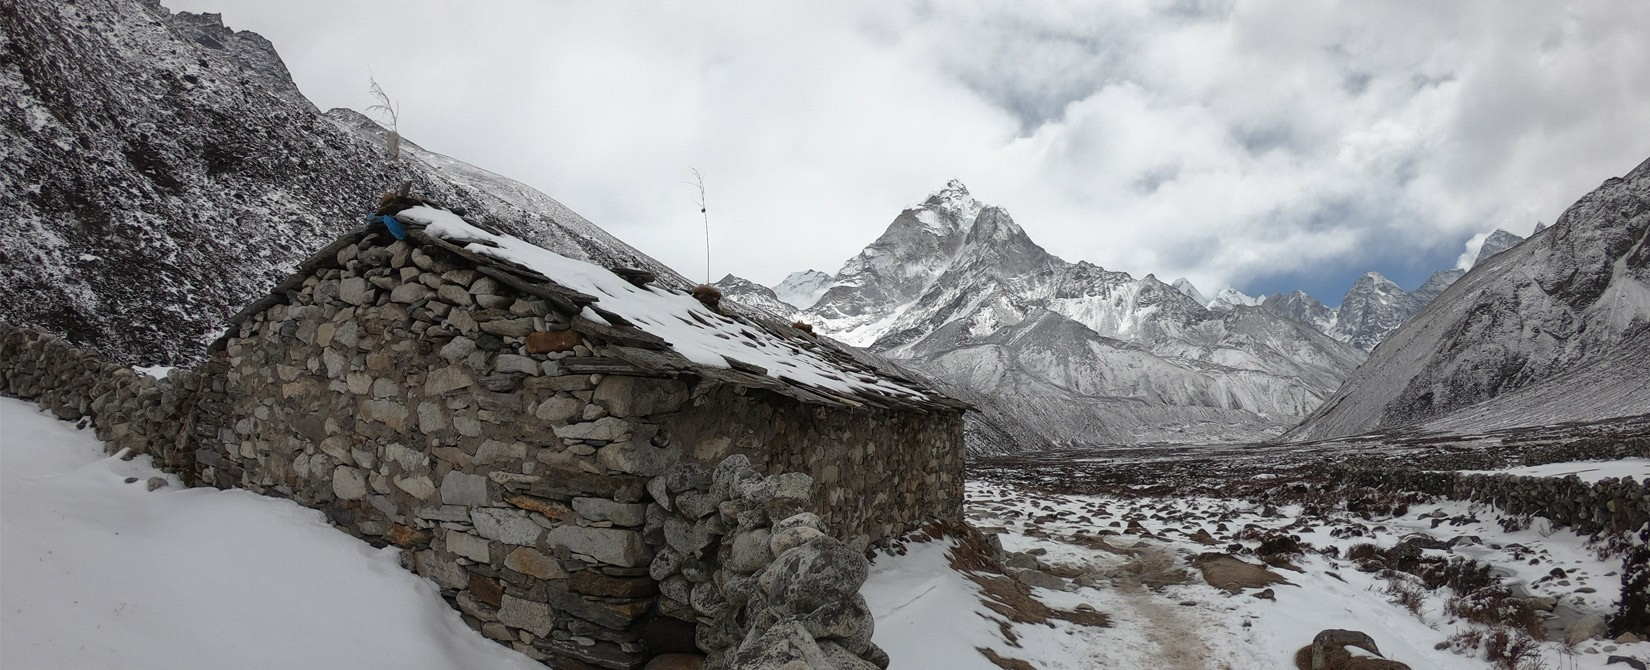 Mount Everest Base Camp Expedition